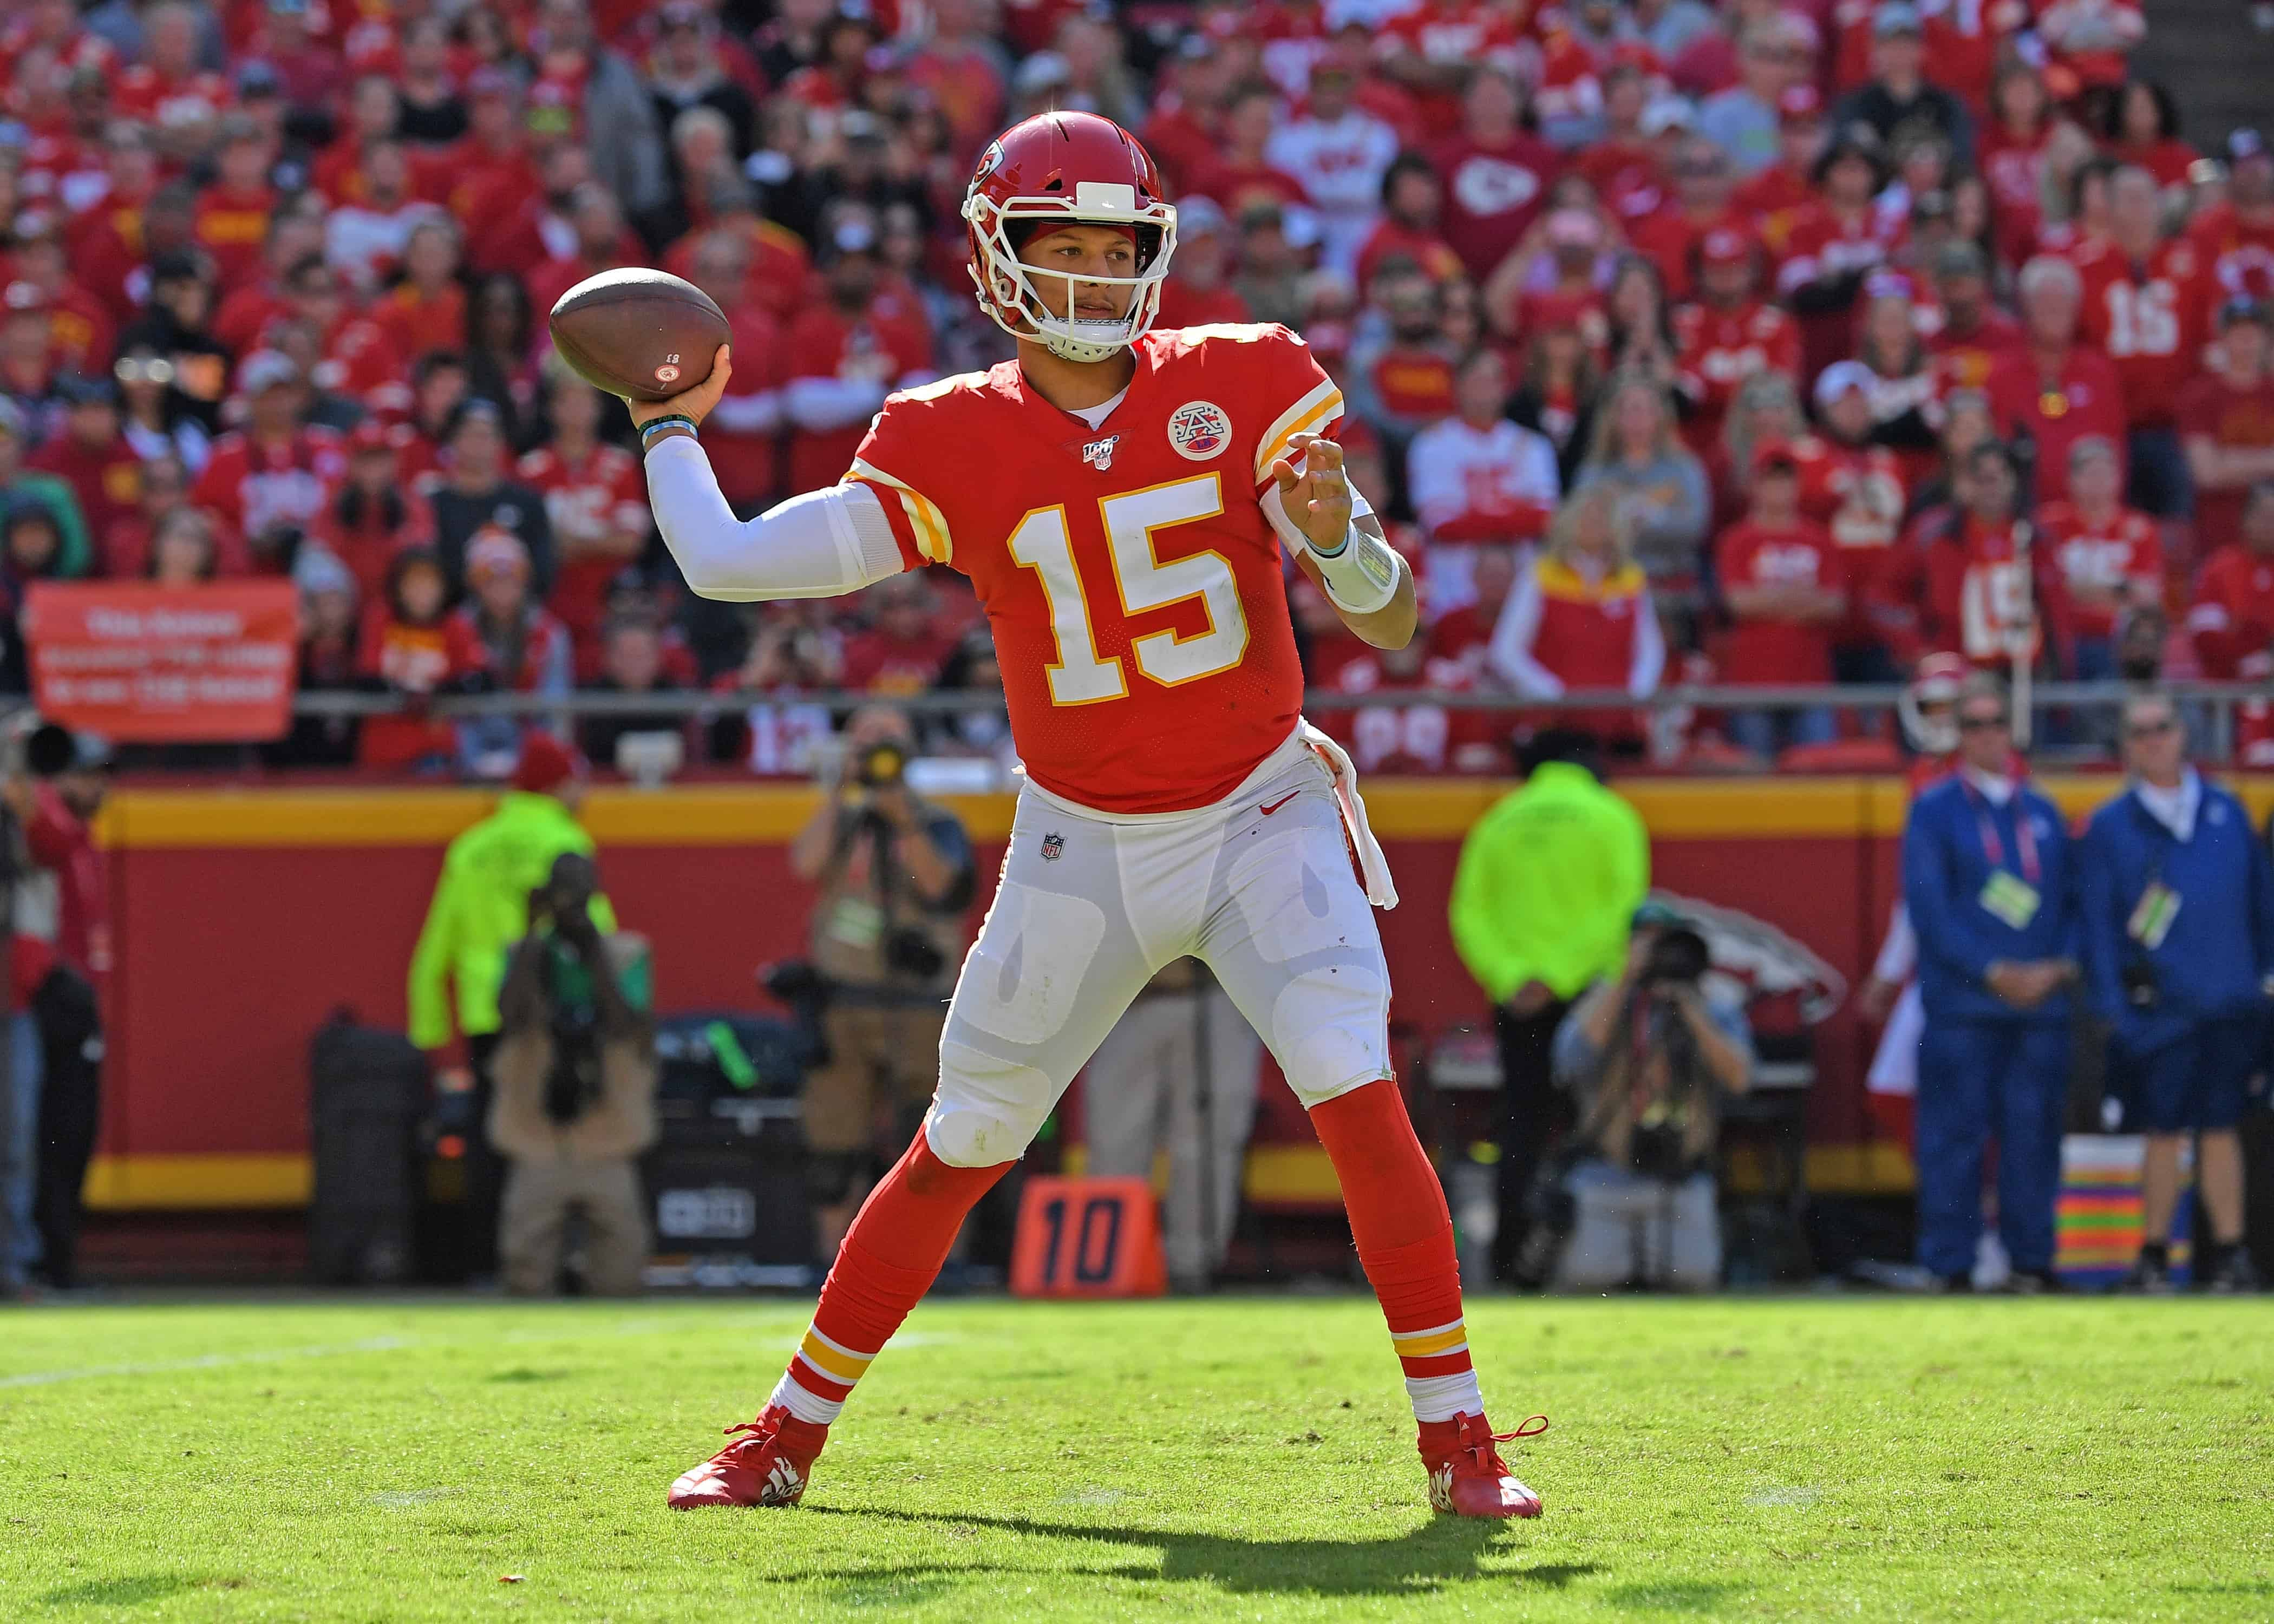 Pin by Joshua Foxworth on Kansas City Chiefs in 2020